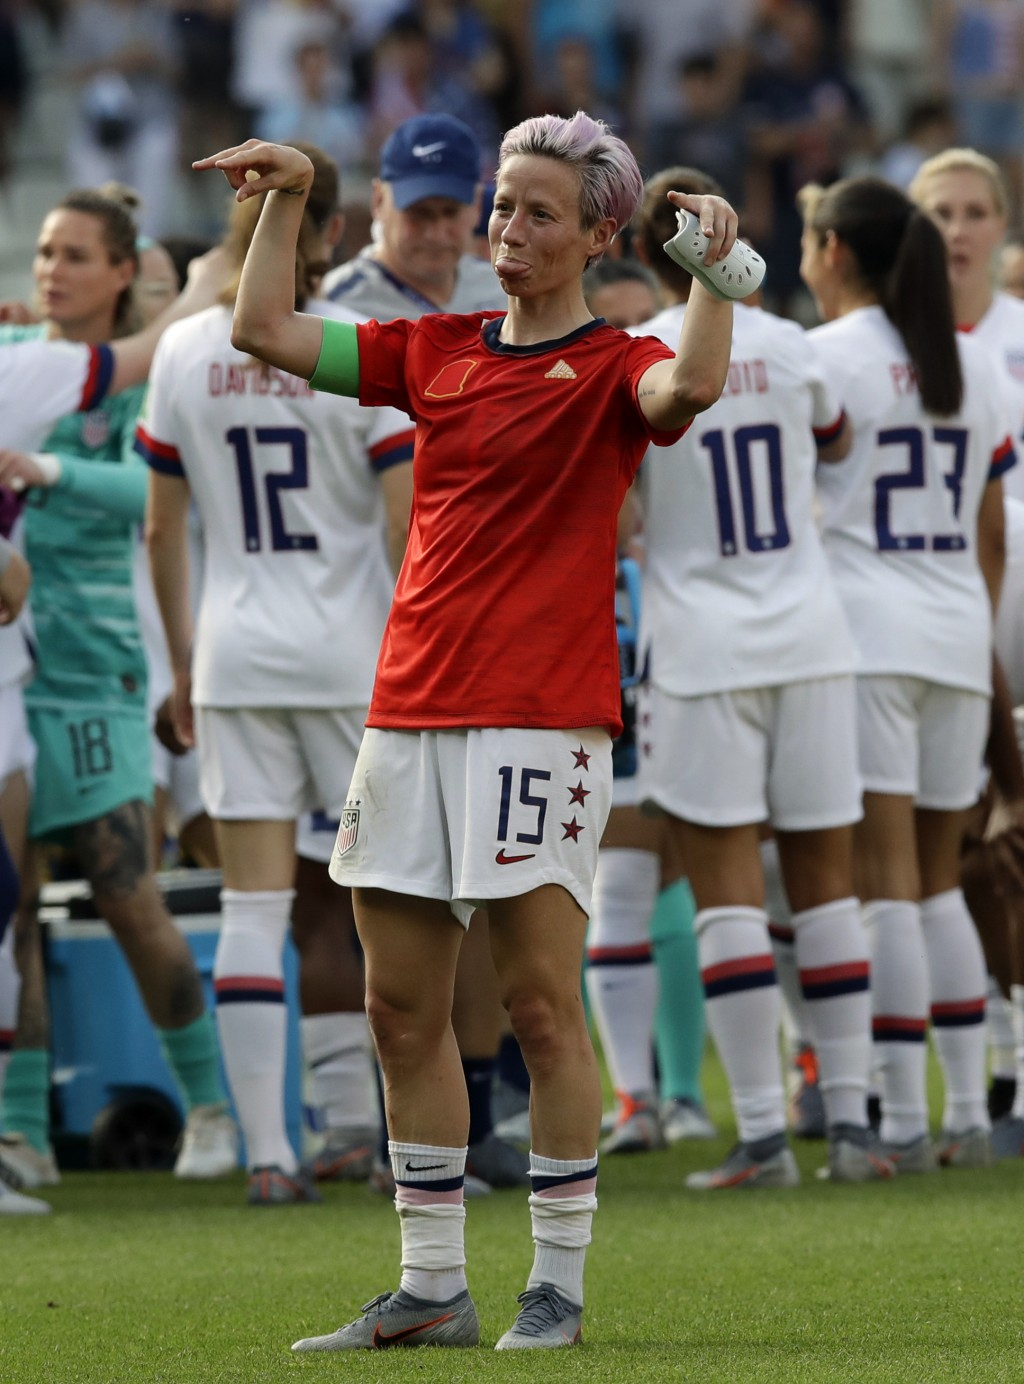 United States'Megan Rapinoe celebrates at the end of the Women's World Cup round of 16 soccer match between Spain and US at the Stade Auguste-Delaune ...